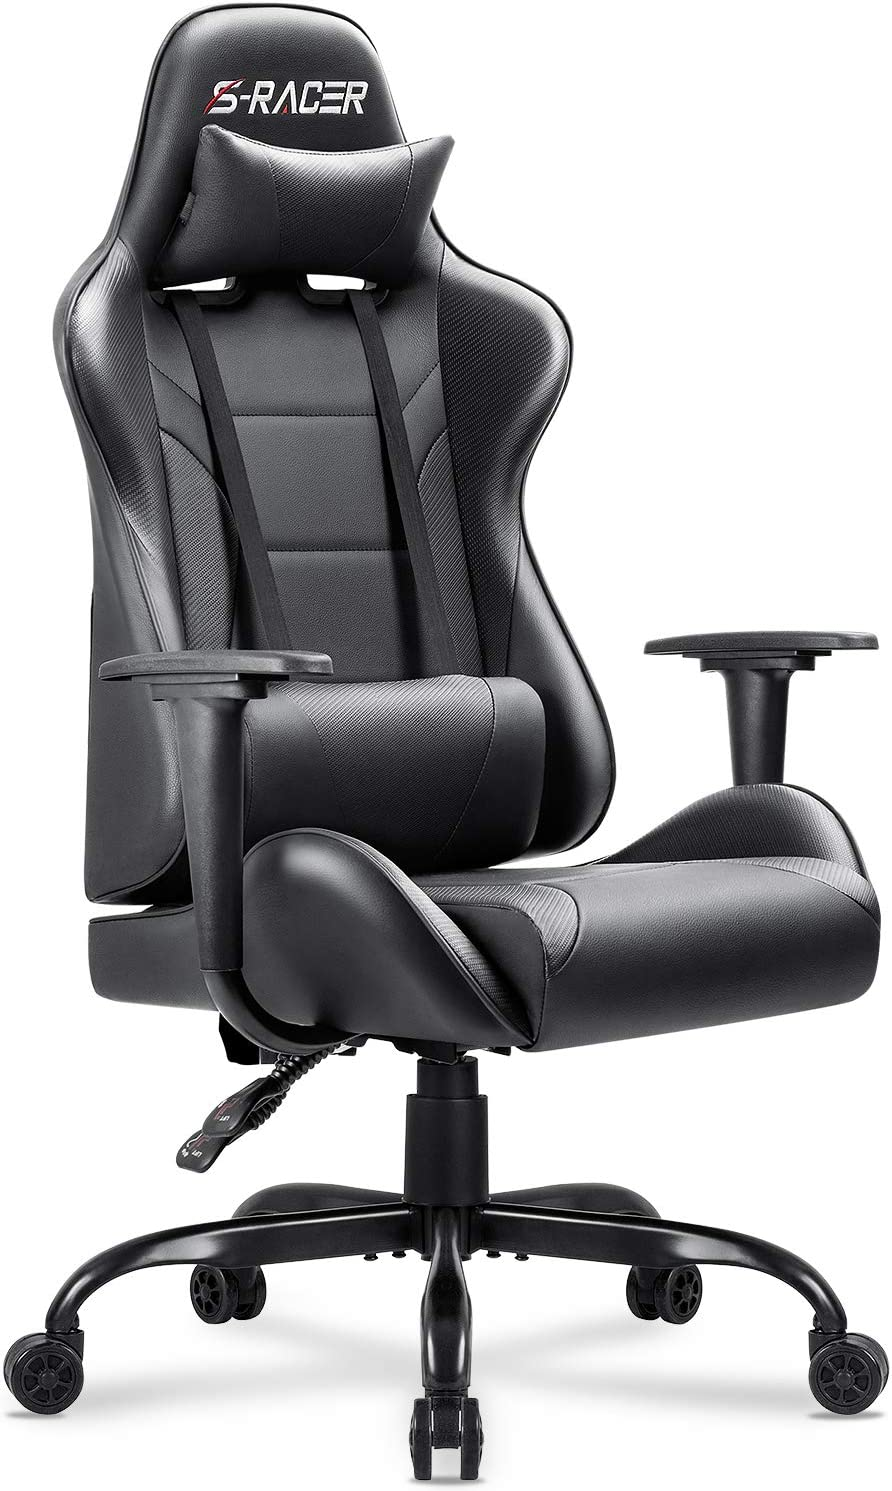 Homall Gaming Office Chair Computer Chair High Back Racing Desk Chair PU Leather Adjustable Seat Height Swivel Chair Ergonomic Executive Chair with Headrest for Adults Black